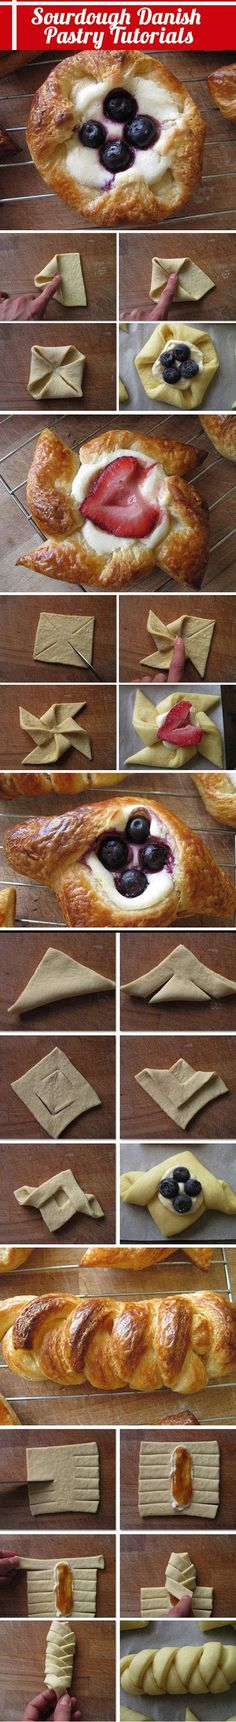 Mmm! Berry Danish